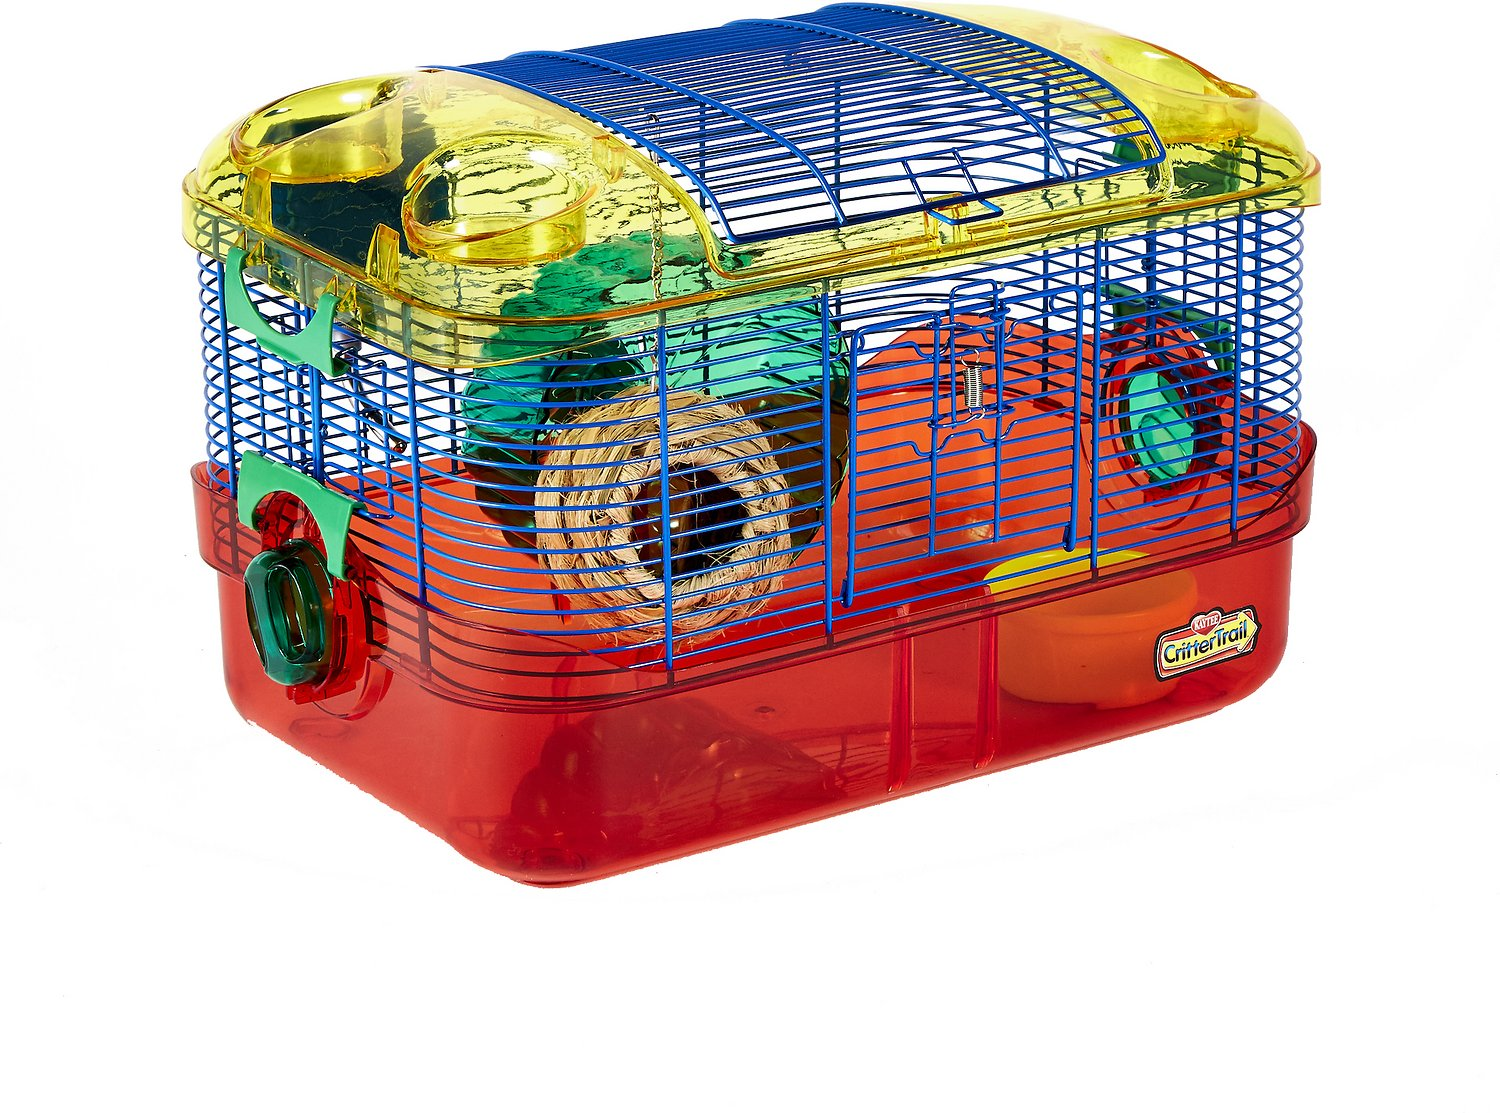 Kaytee CritterTrail Primary Small Animal Habitat, 16-in